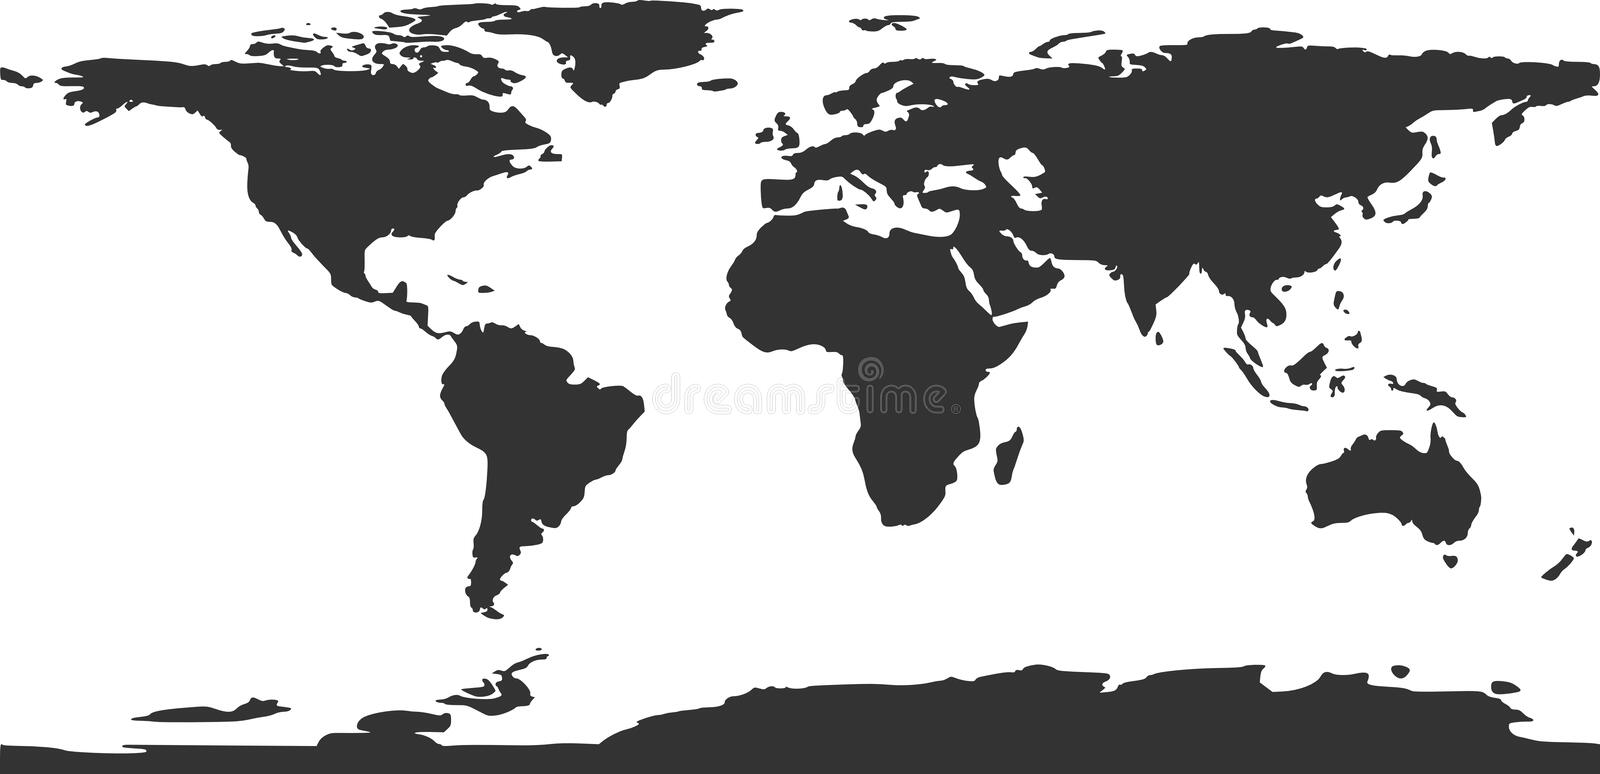 Vector world map stock vector illustration of geographical 35642227 download vector world map stock vector illustration of geographical 35642227 gumiabroncs Choice Image